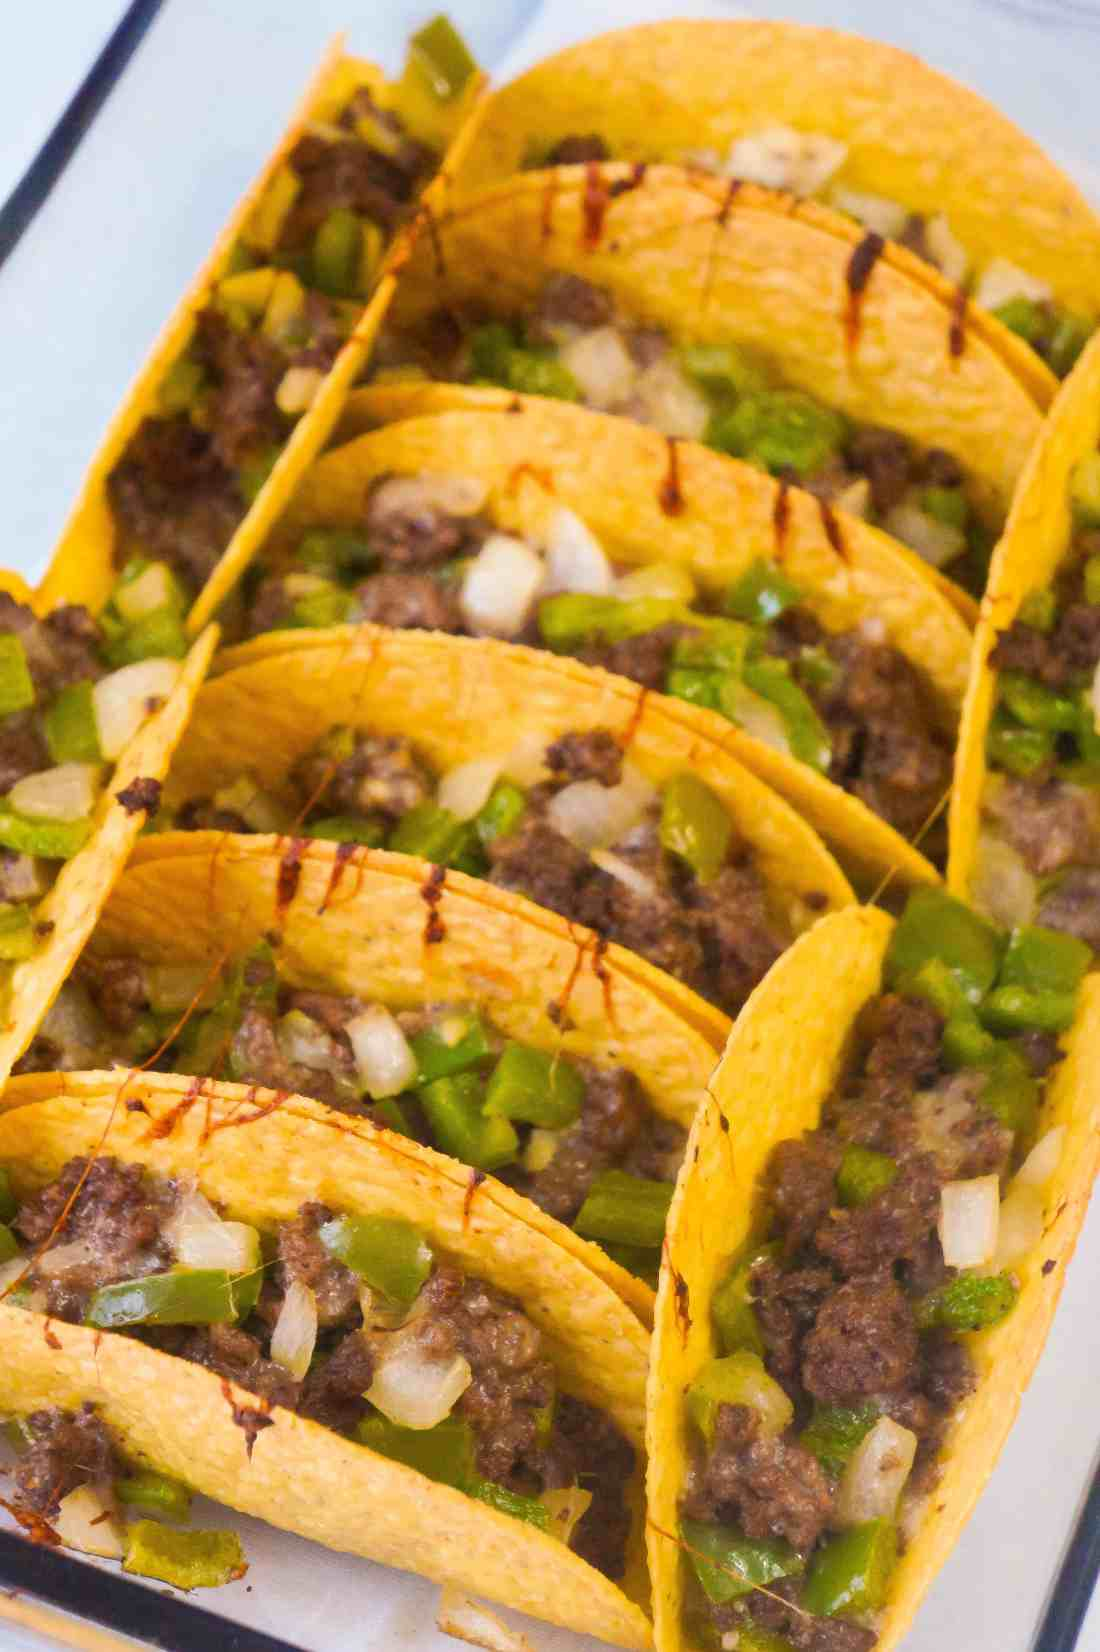 Philly Cheese Steak Tacos This Is Not Diet Food